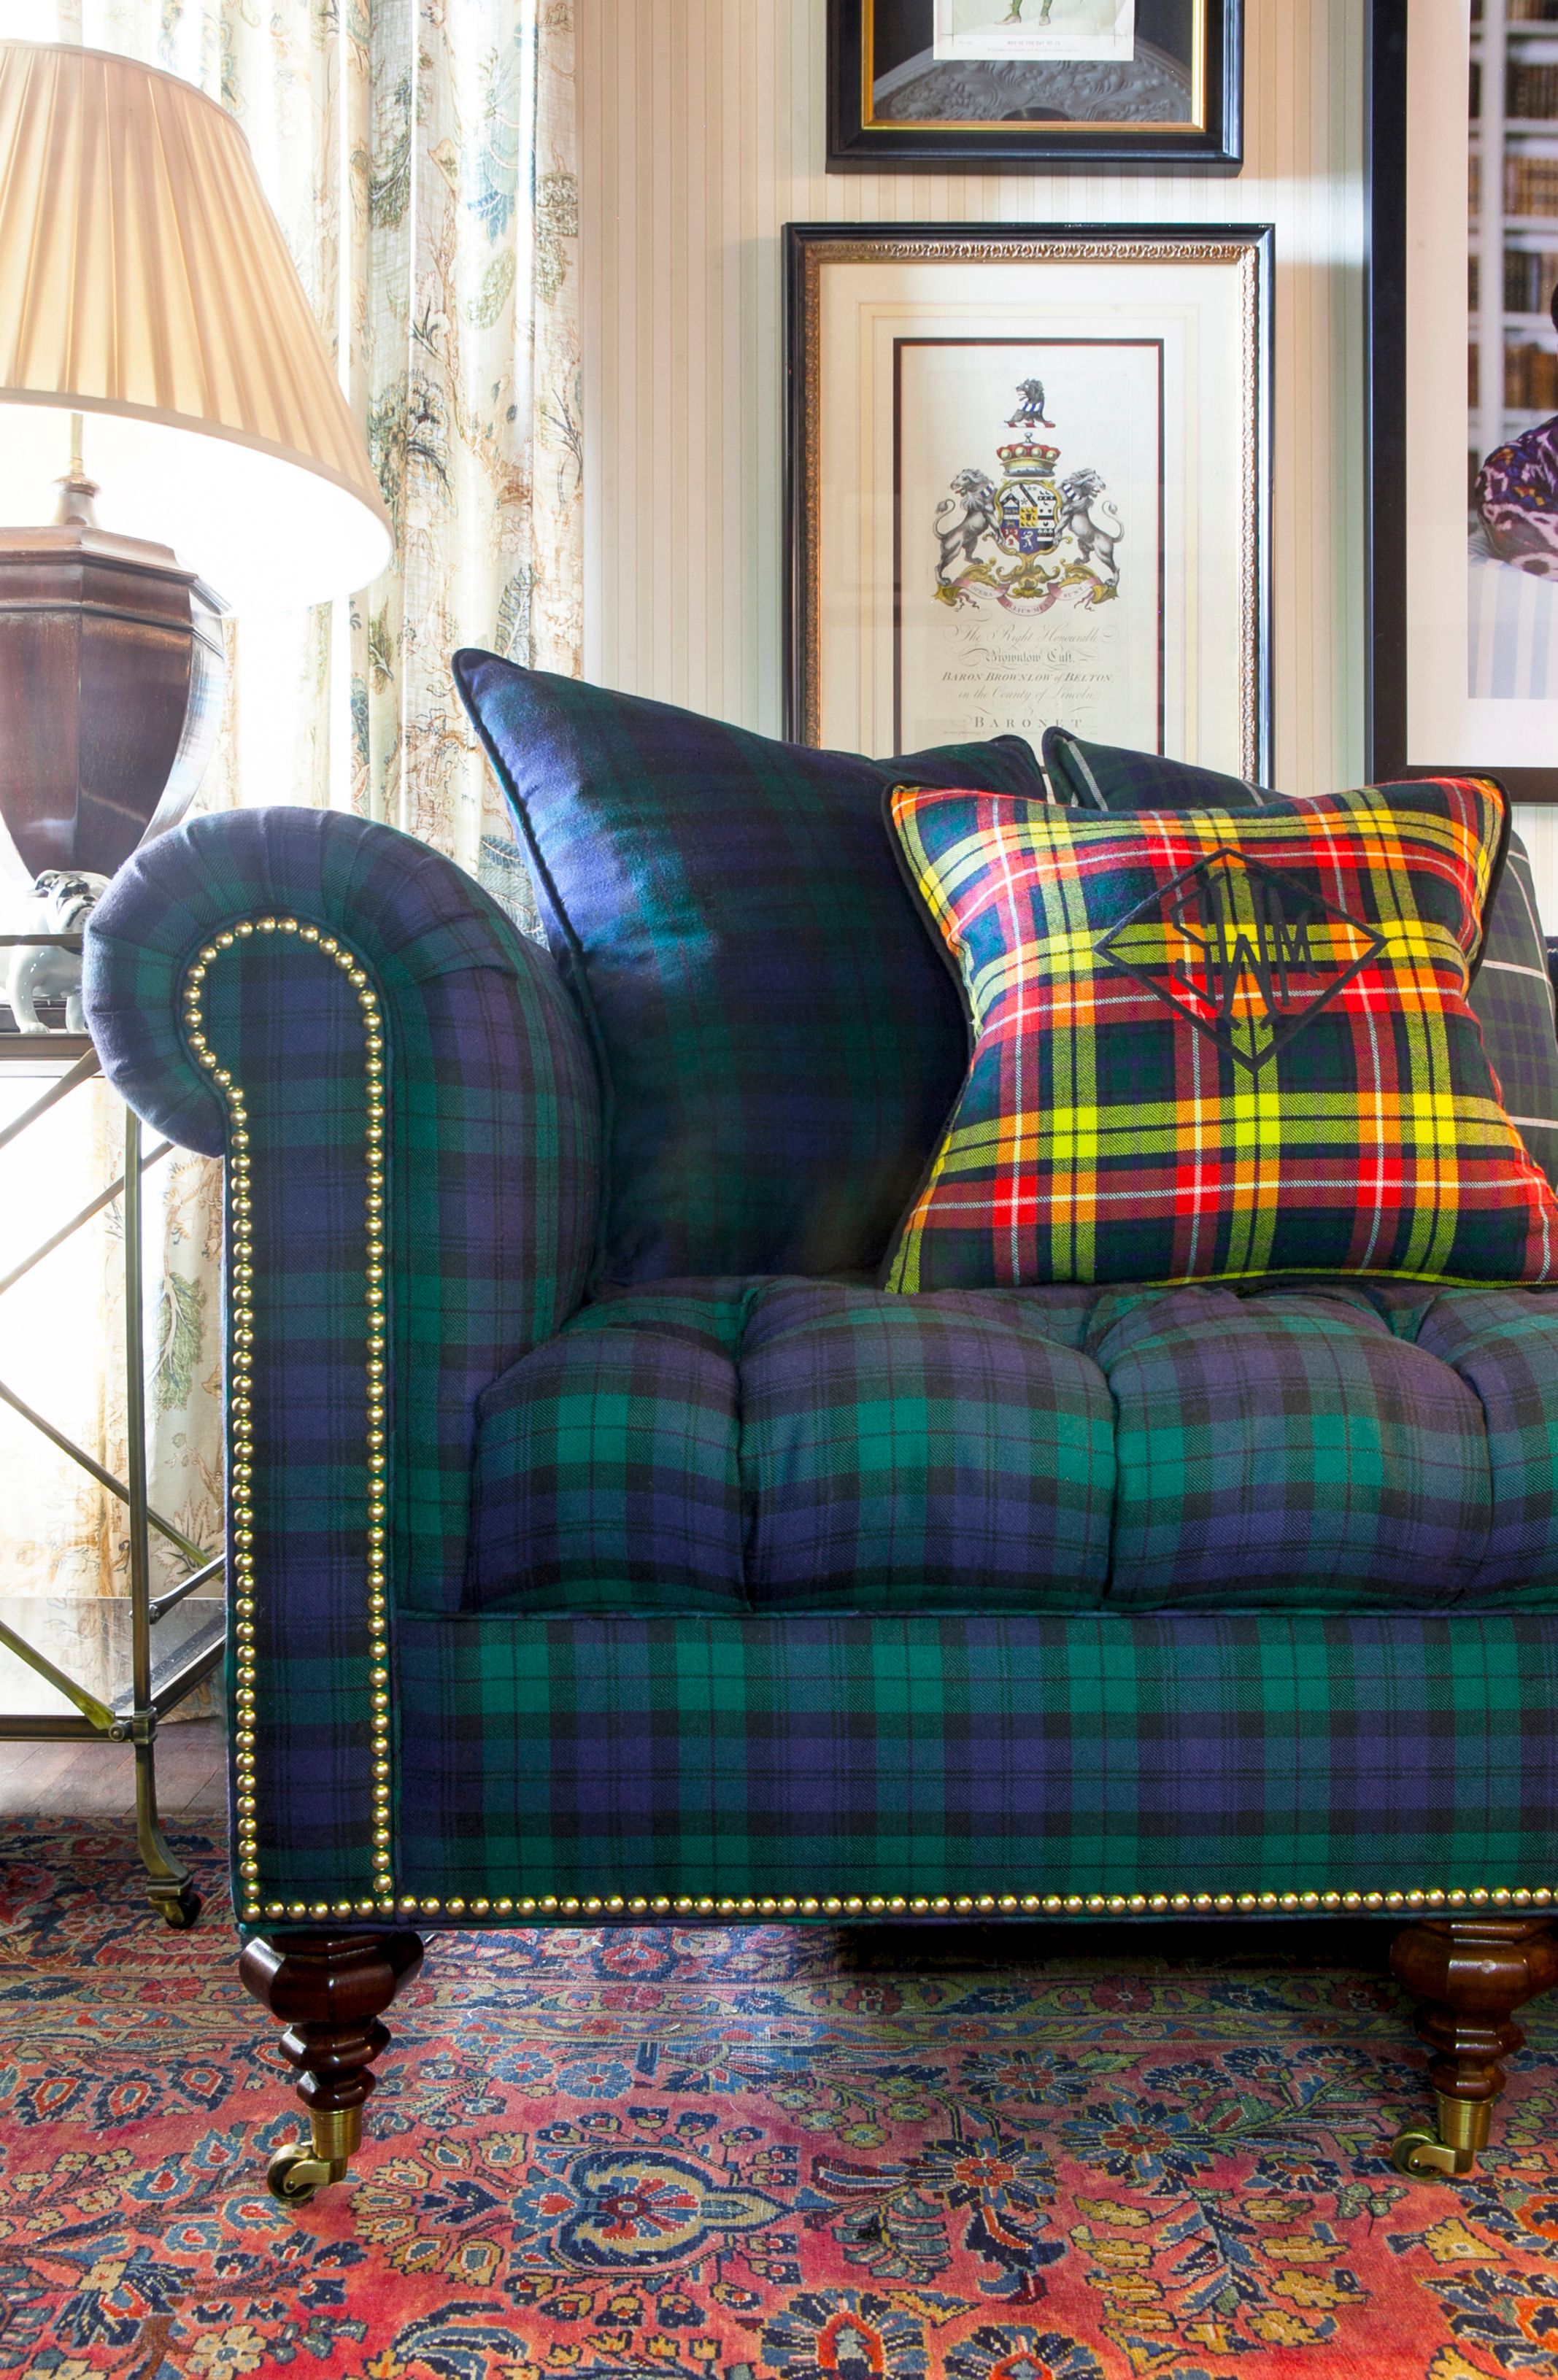 Buy Inverness Sofa in Blackwatch Tartan by Scot Meacham Wood